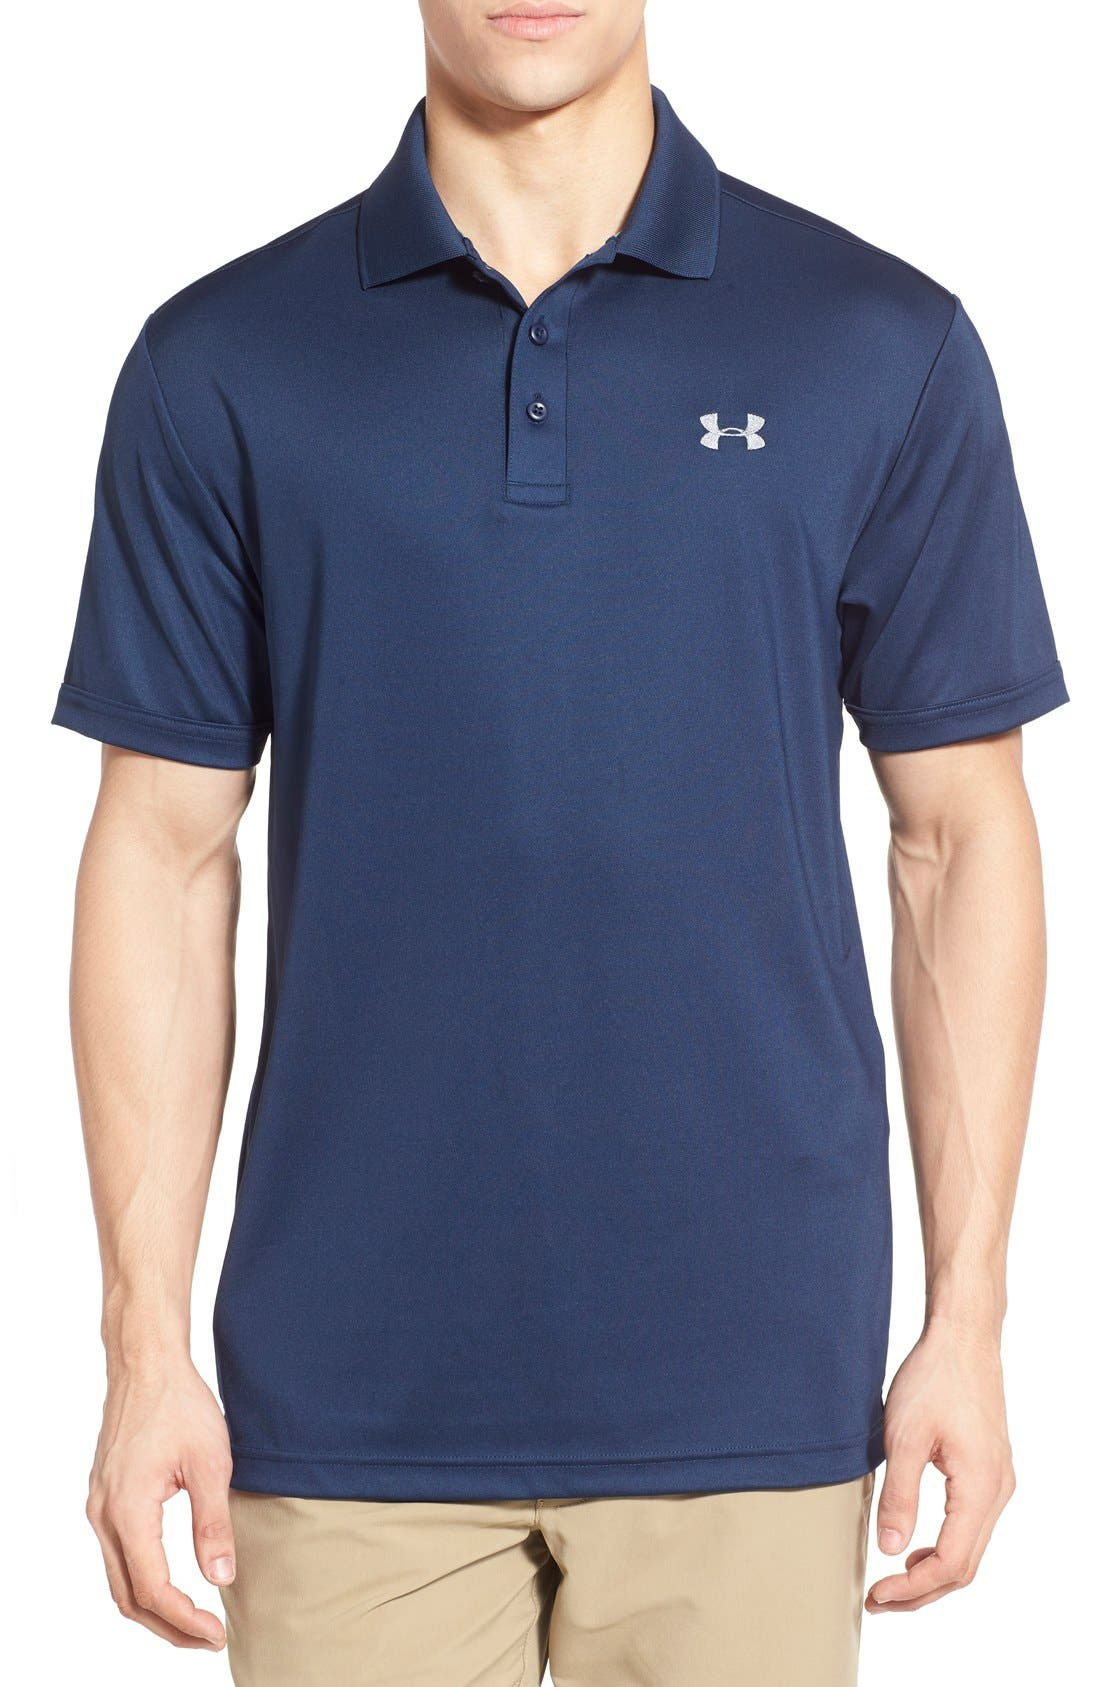 Main Image - Under Armour 'Performance 2.0' Sweat Wicking Stretch Polo